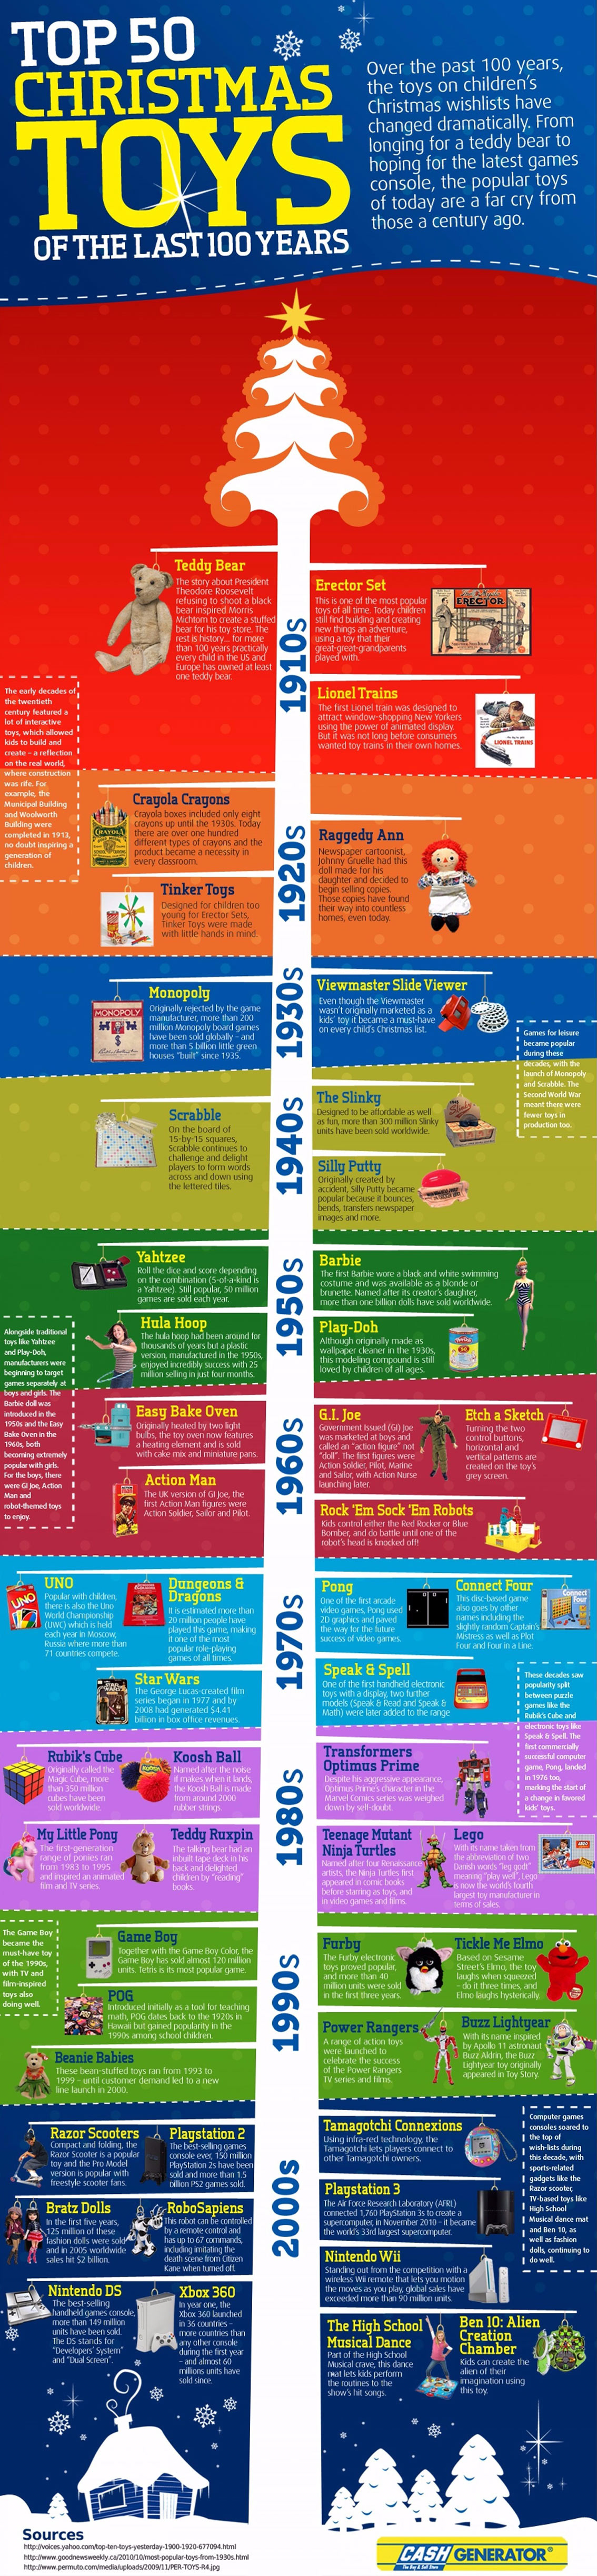 Hottest Christmas Toys in the Past 100 Years Infographic